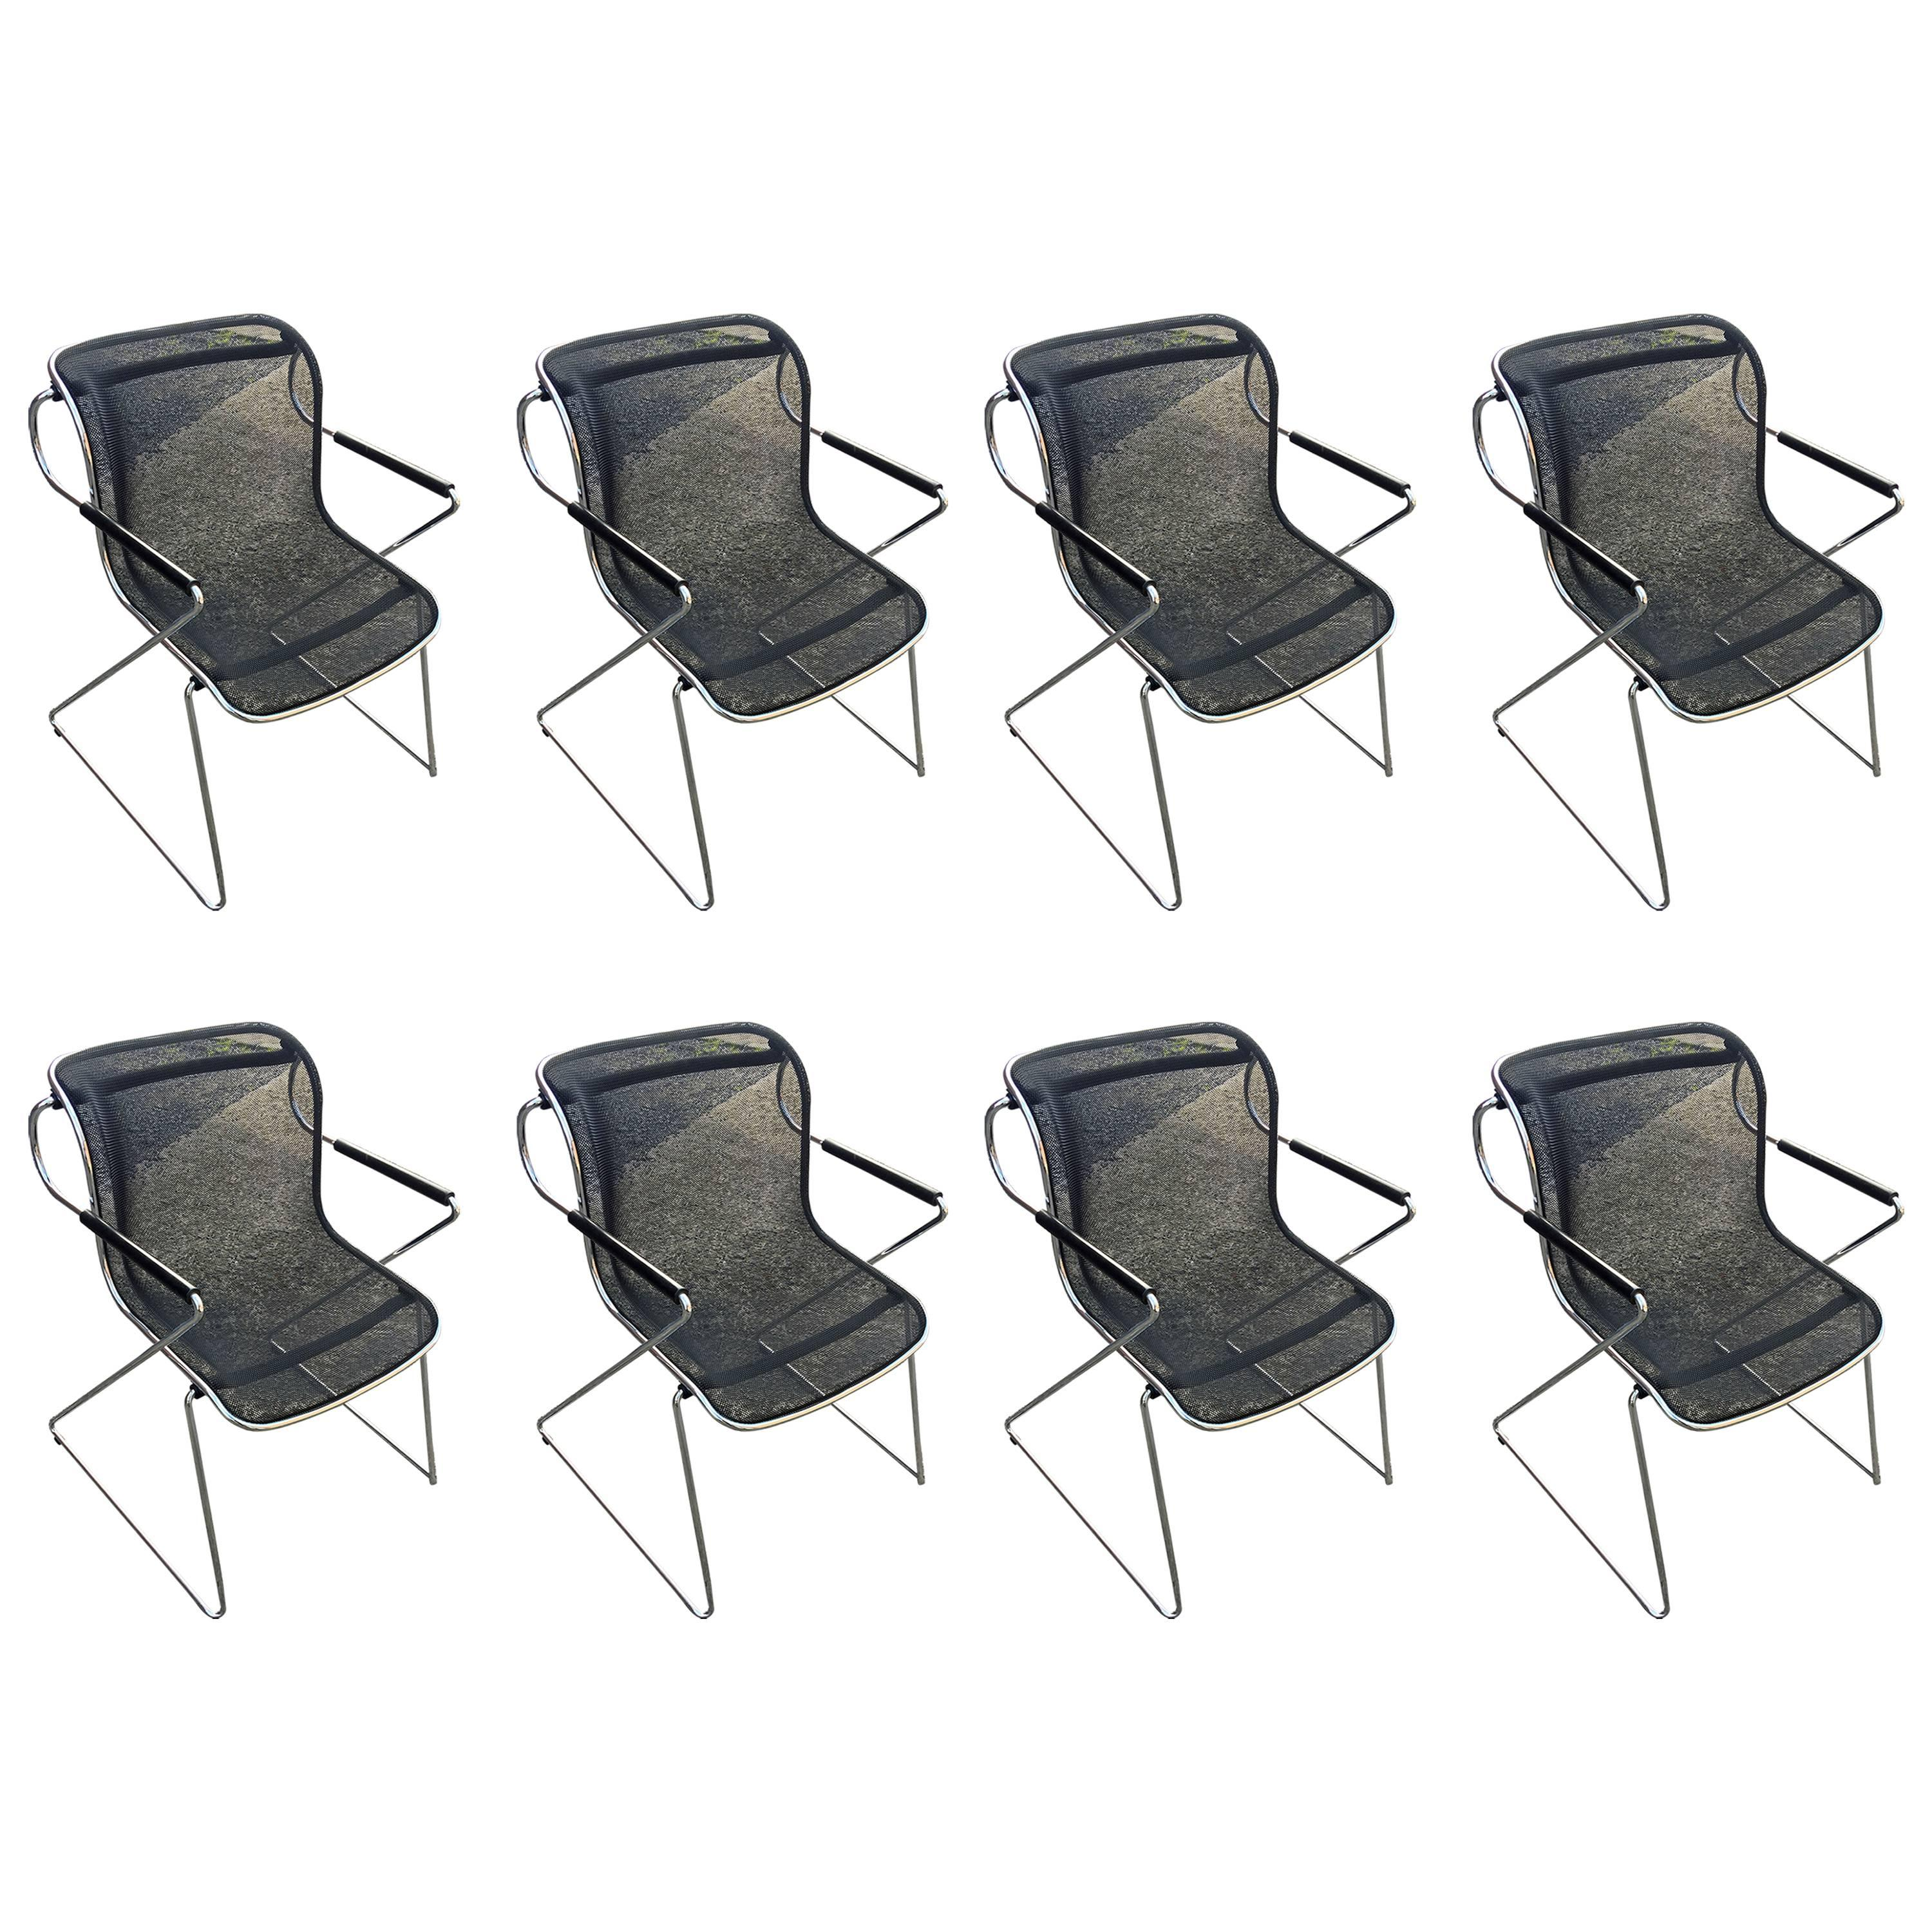 Charles Pollock, Set of Height Penelope Chairs in Chrome and Meshed Metal